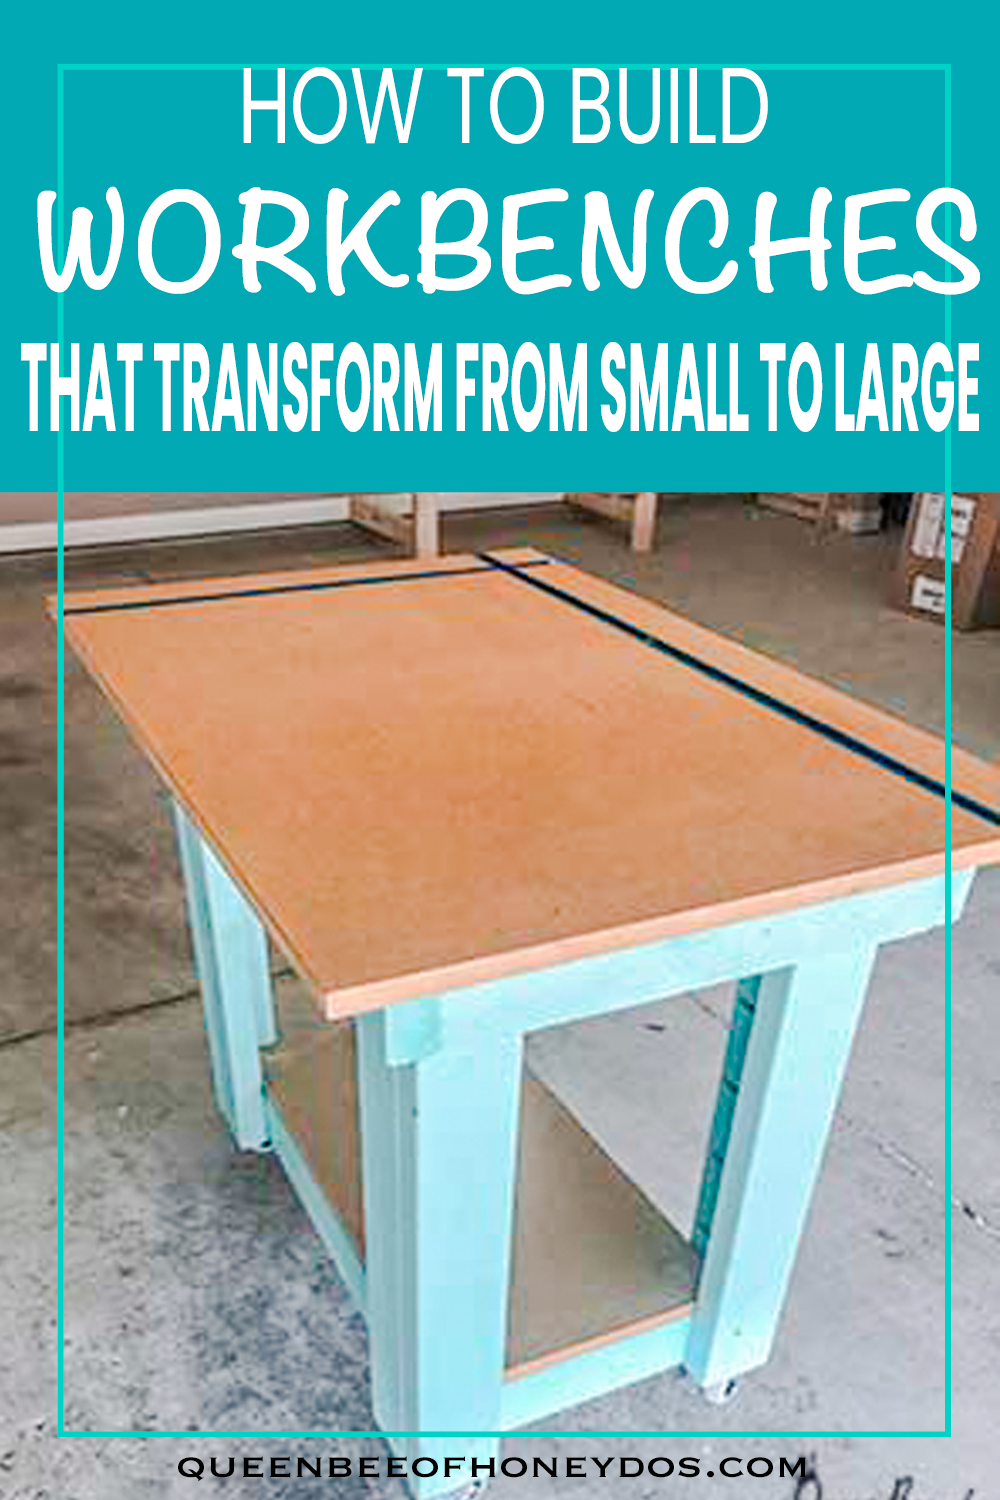 How To Build a 3-Way Convertible Workbench or Crafting Table